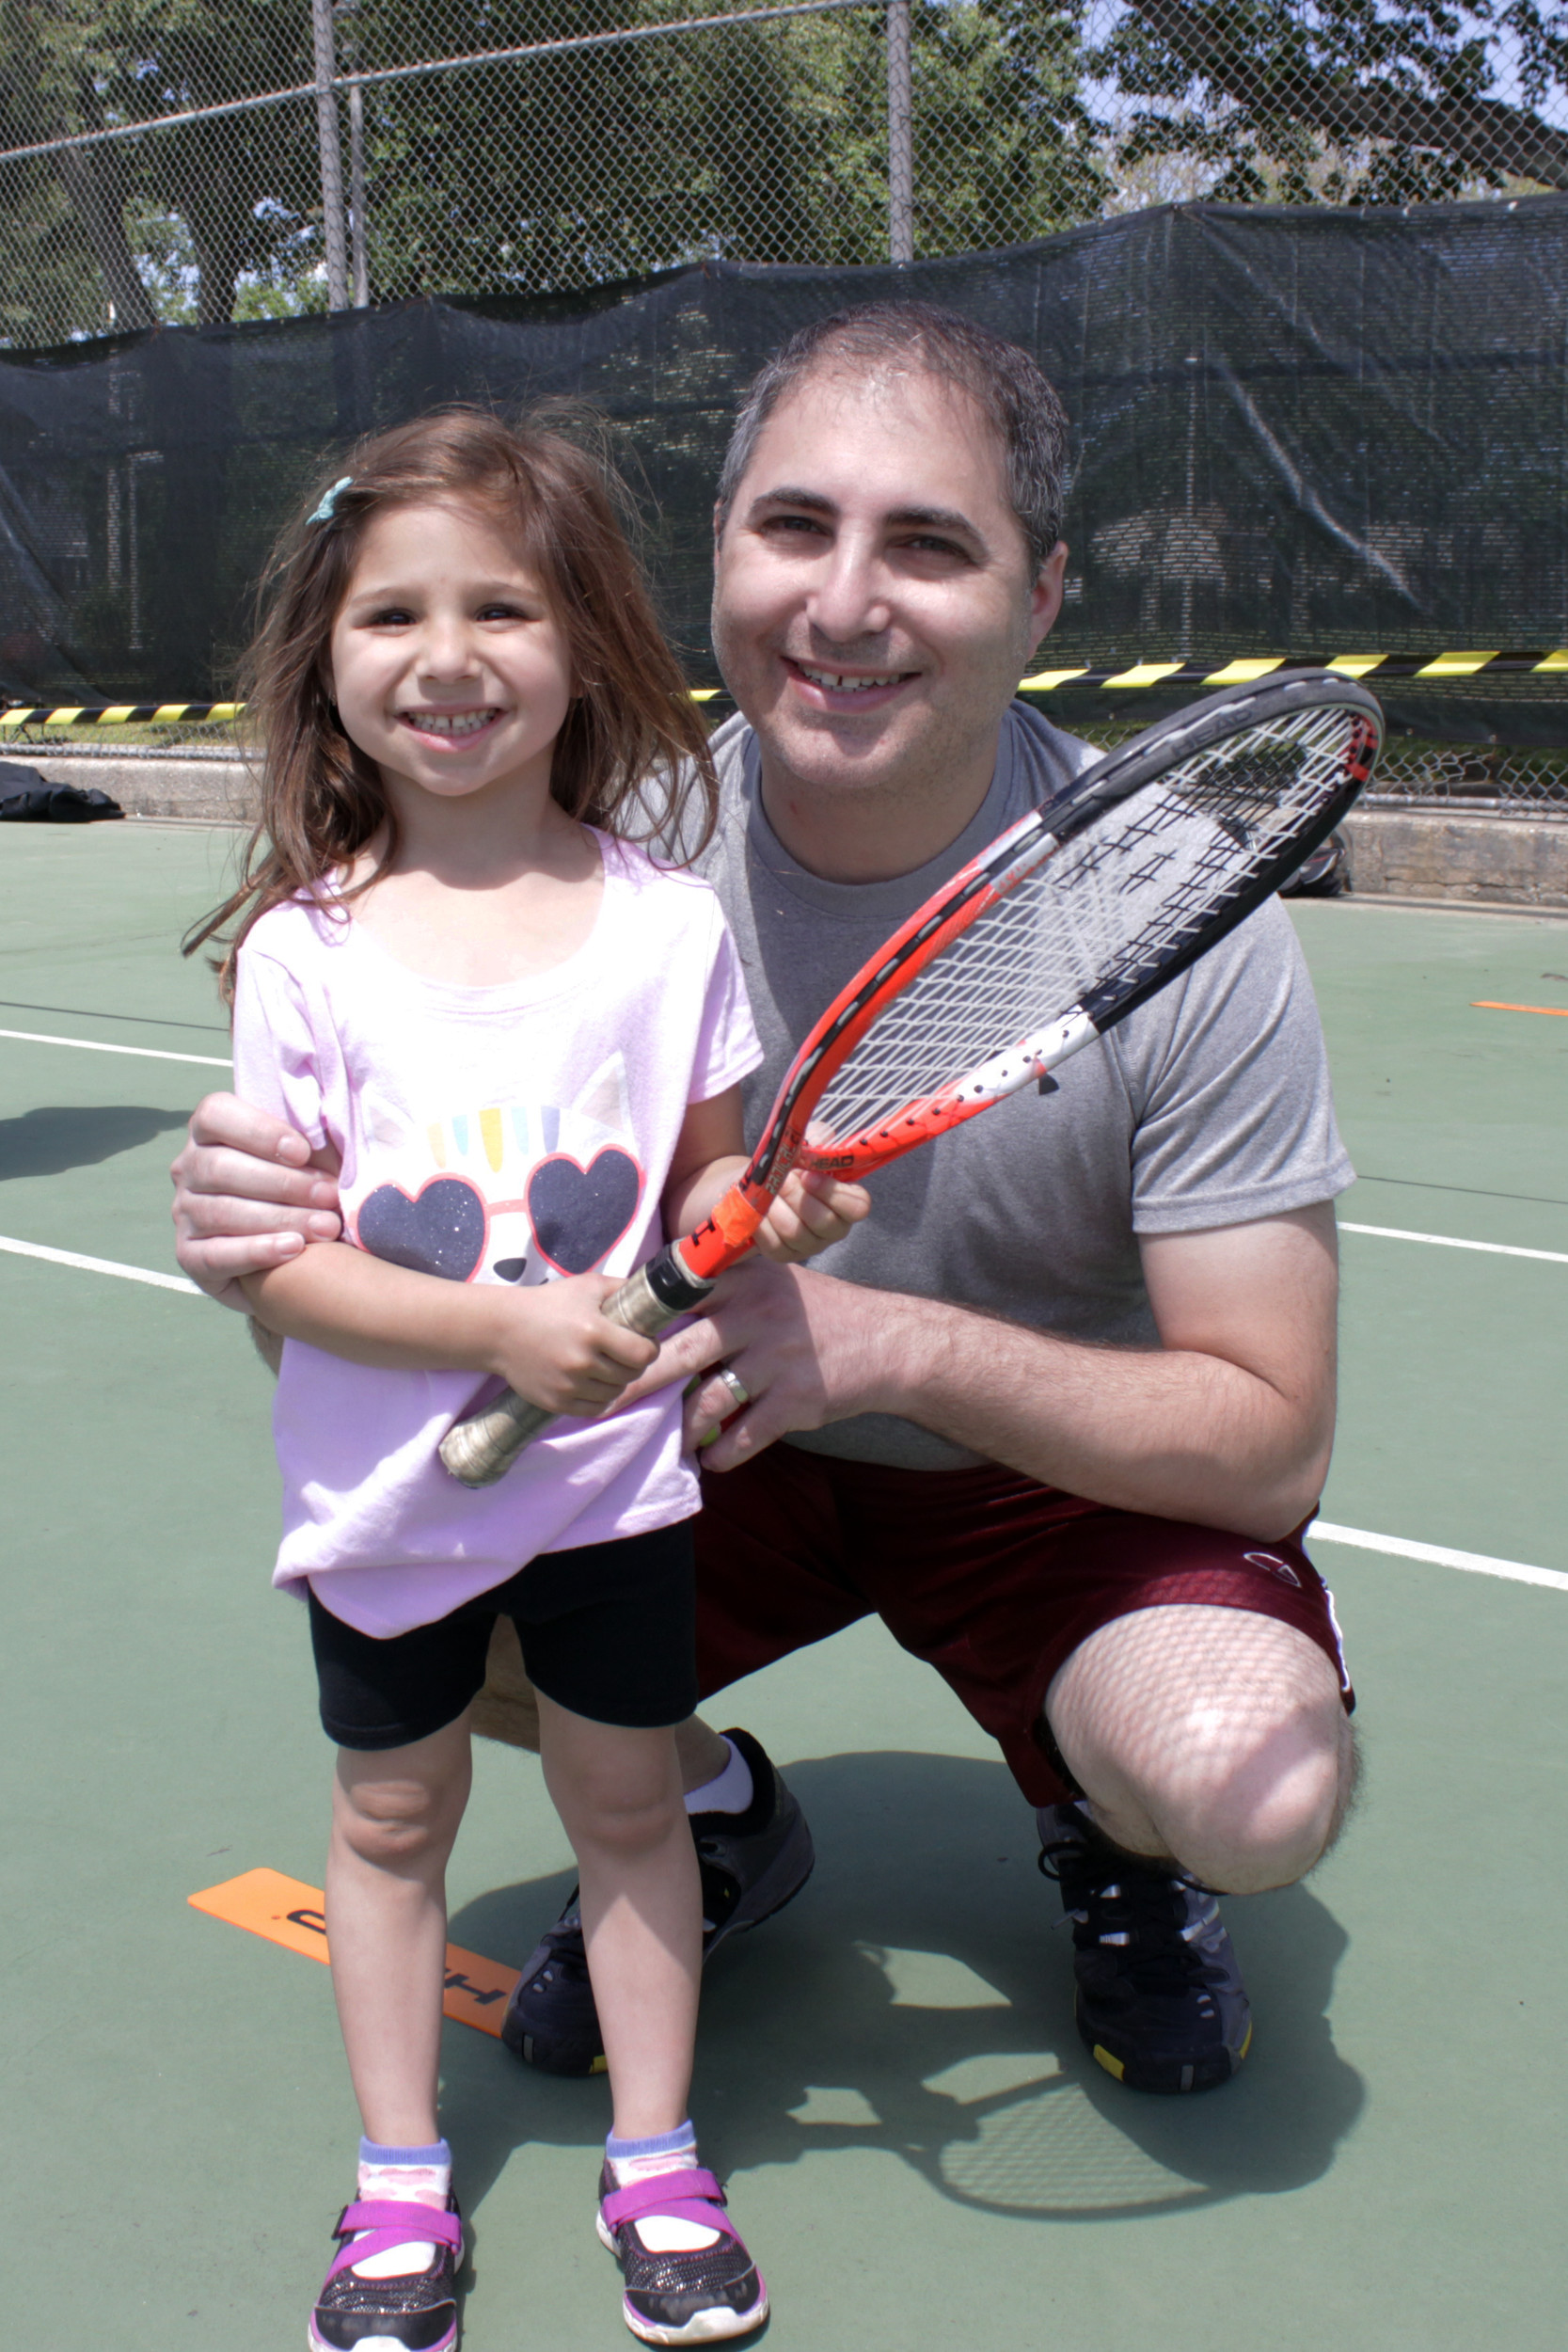 Gustavo That, of Valley Stream, attended the clinic to teach his daughter Gabriella, 4, how to play his favorite sport.